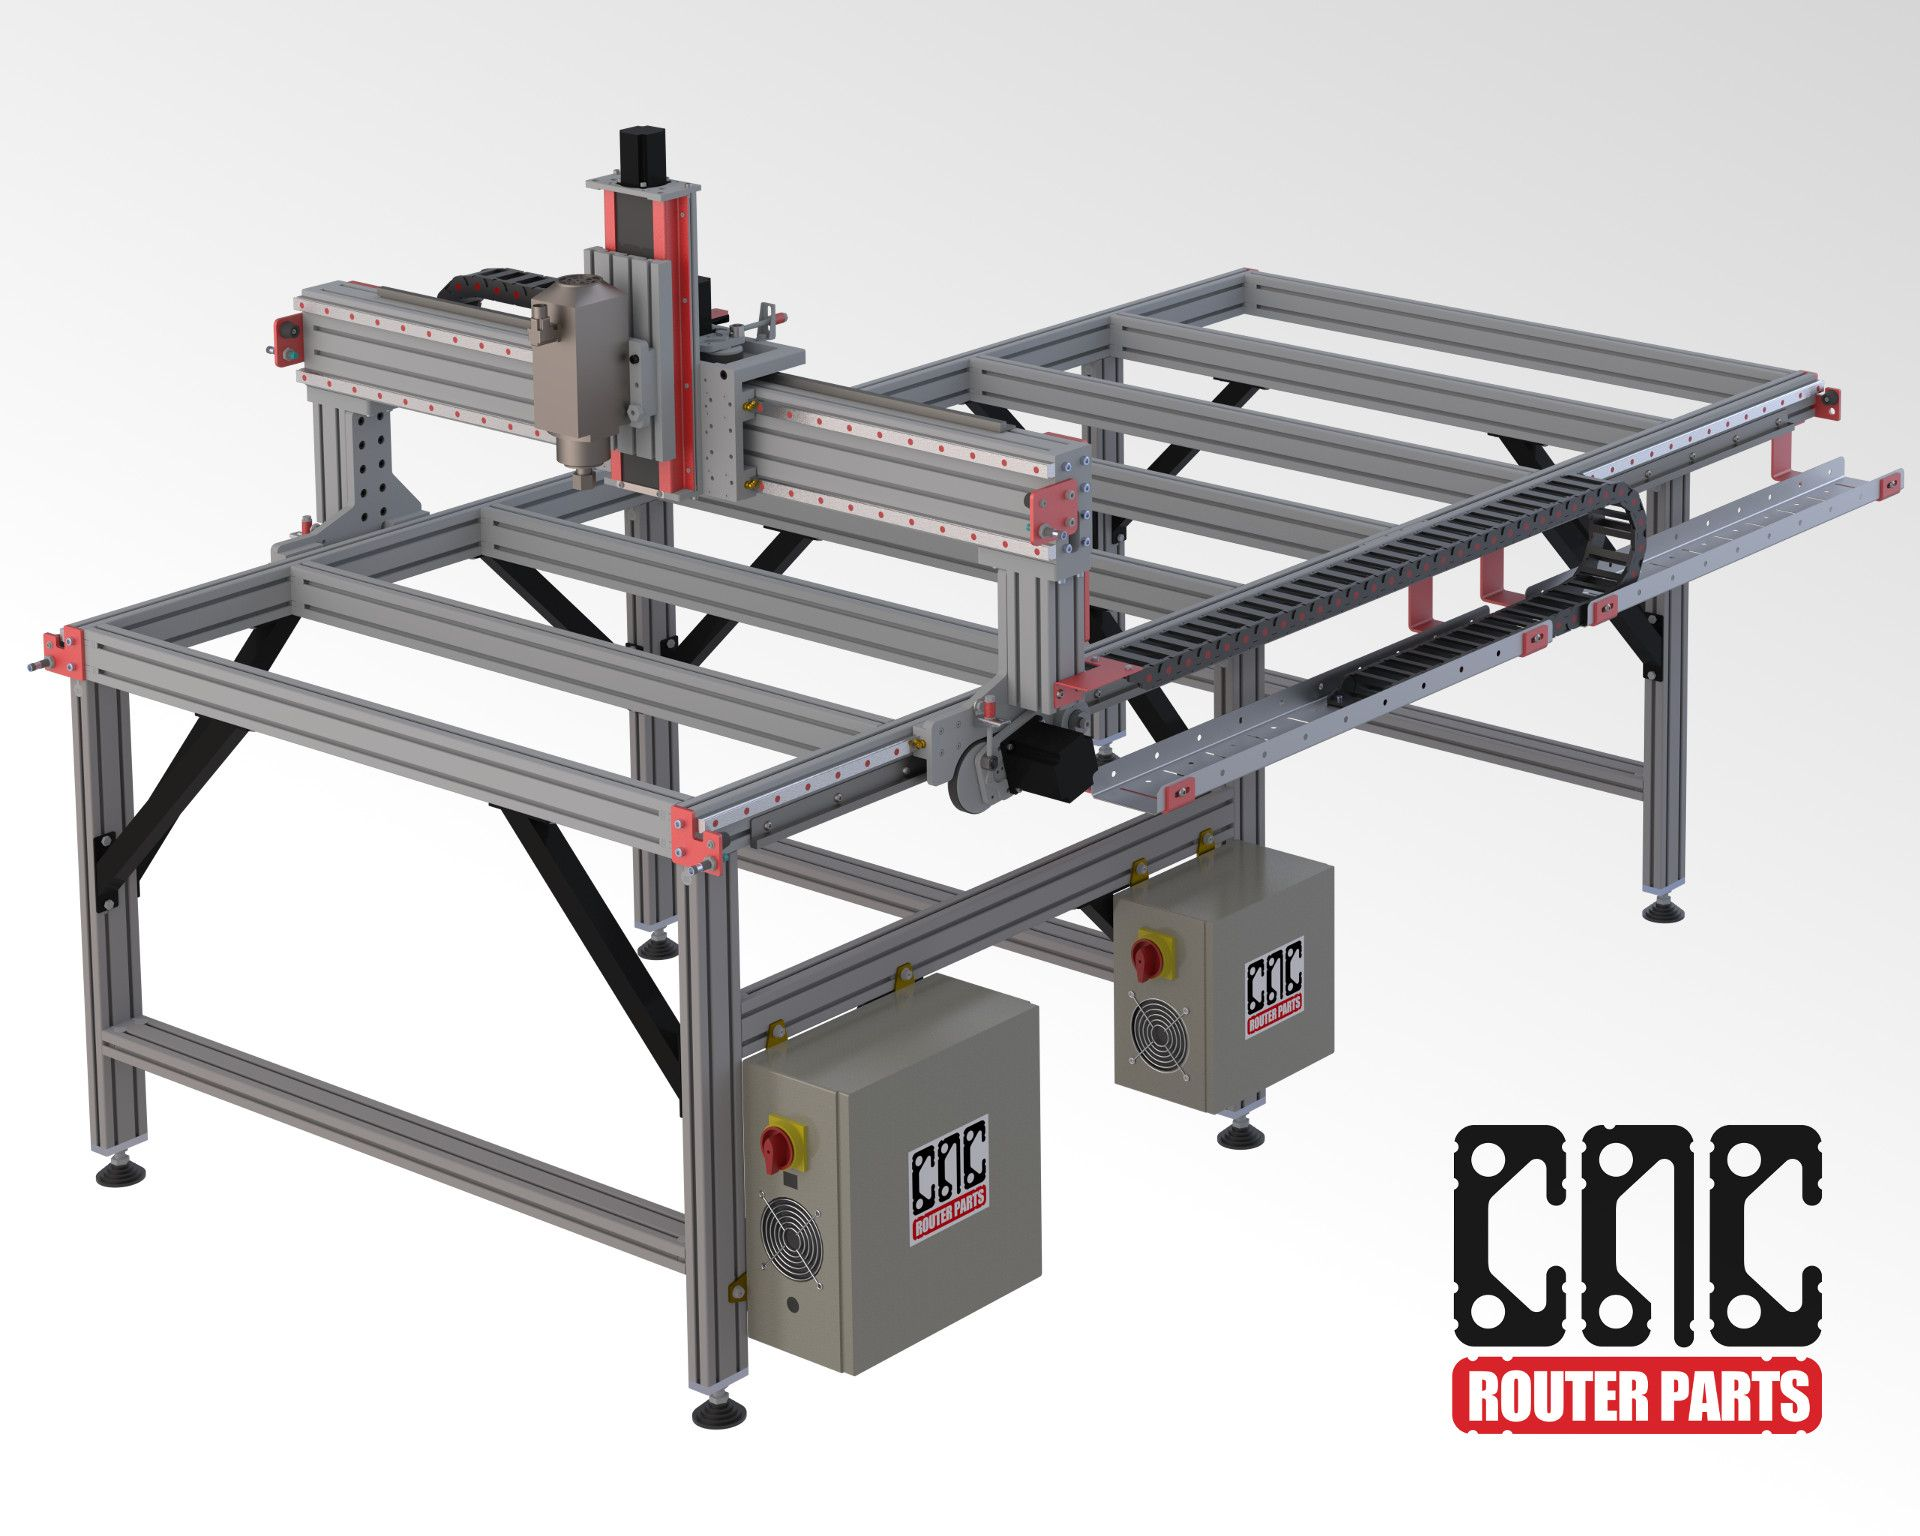 CNC Router Parts PRO4896 Cnc router, Diy cnc router, Cnc